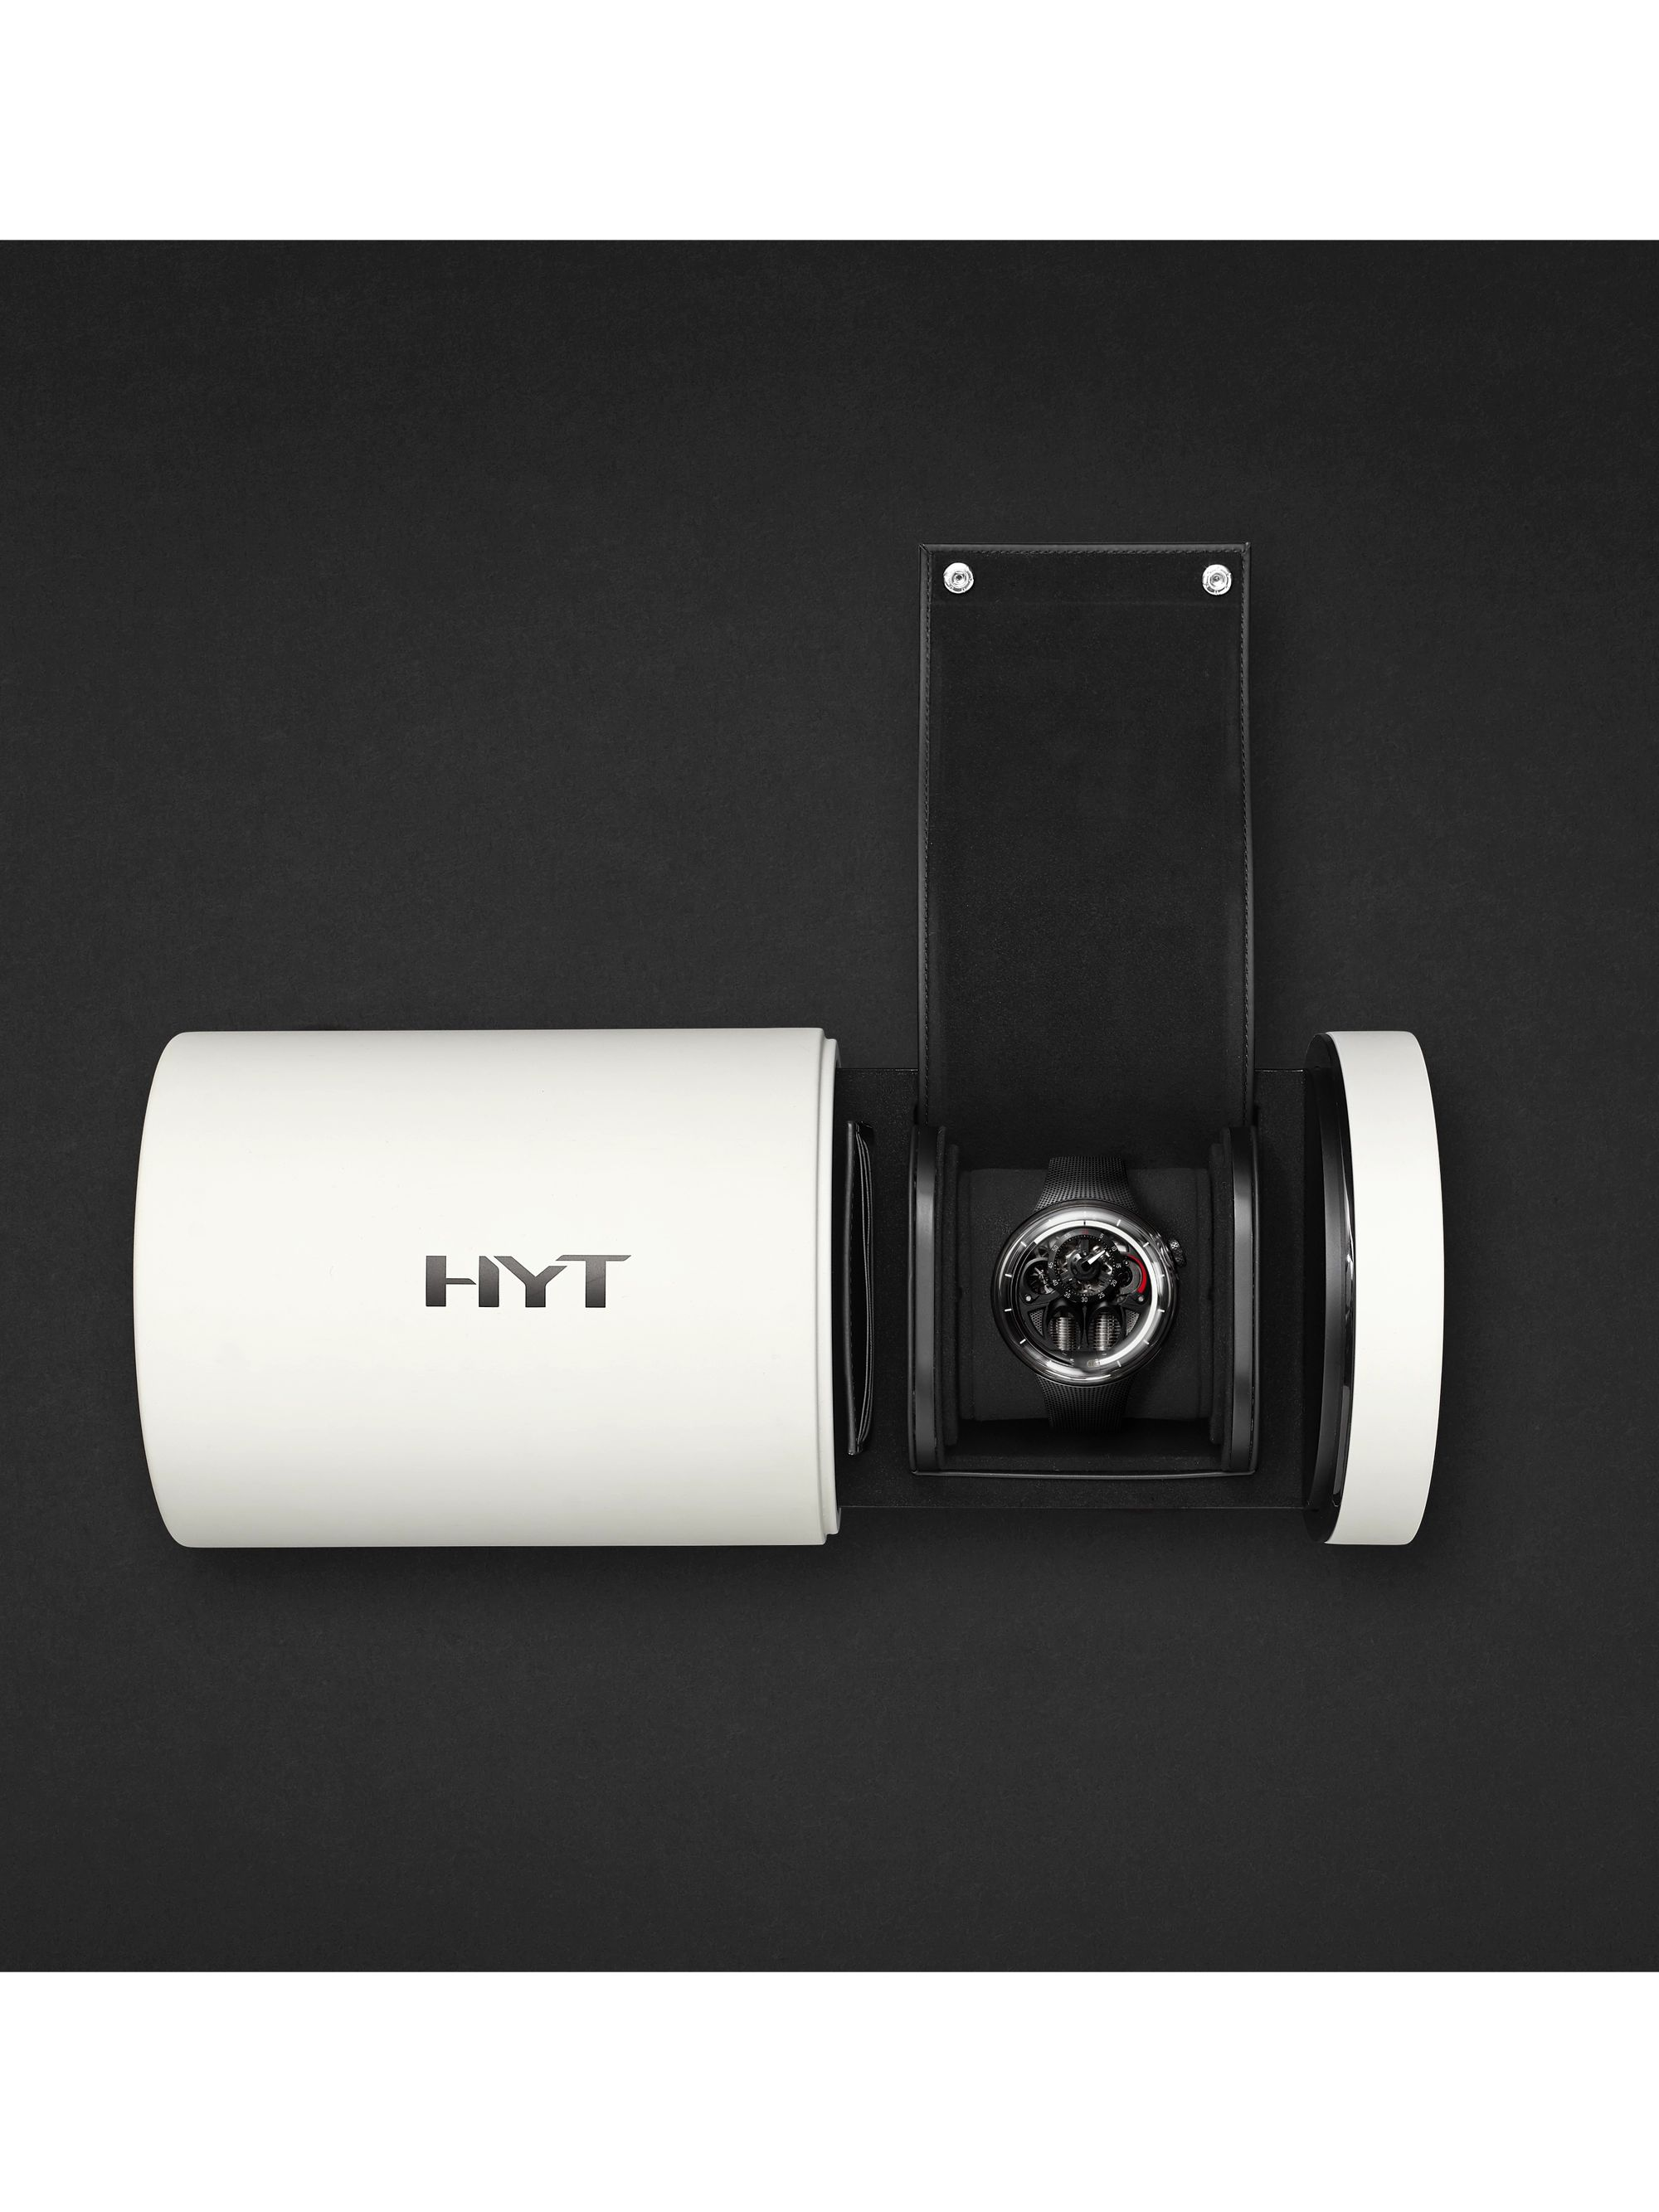 HYT H1.0 x MR PORTER Limited Edition Hand-Wound 48.8mm Stainless Steel and Rubber Watch, Ref No. H02361